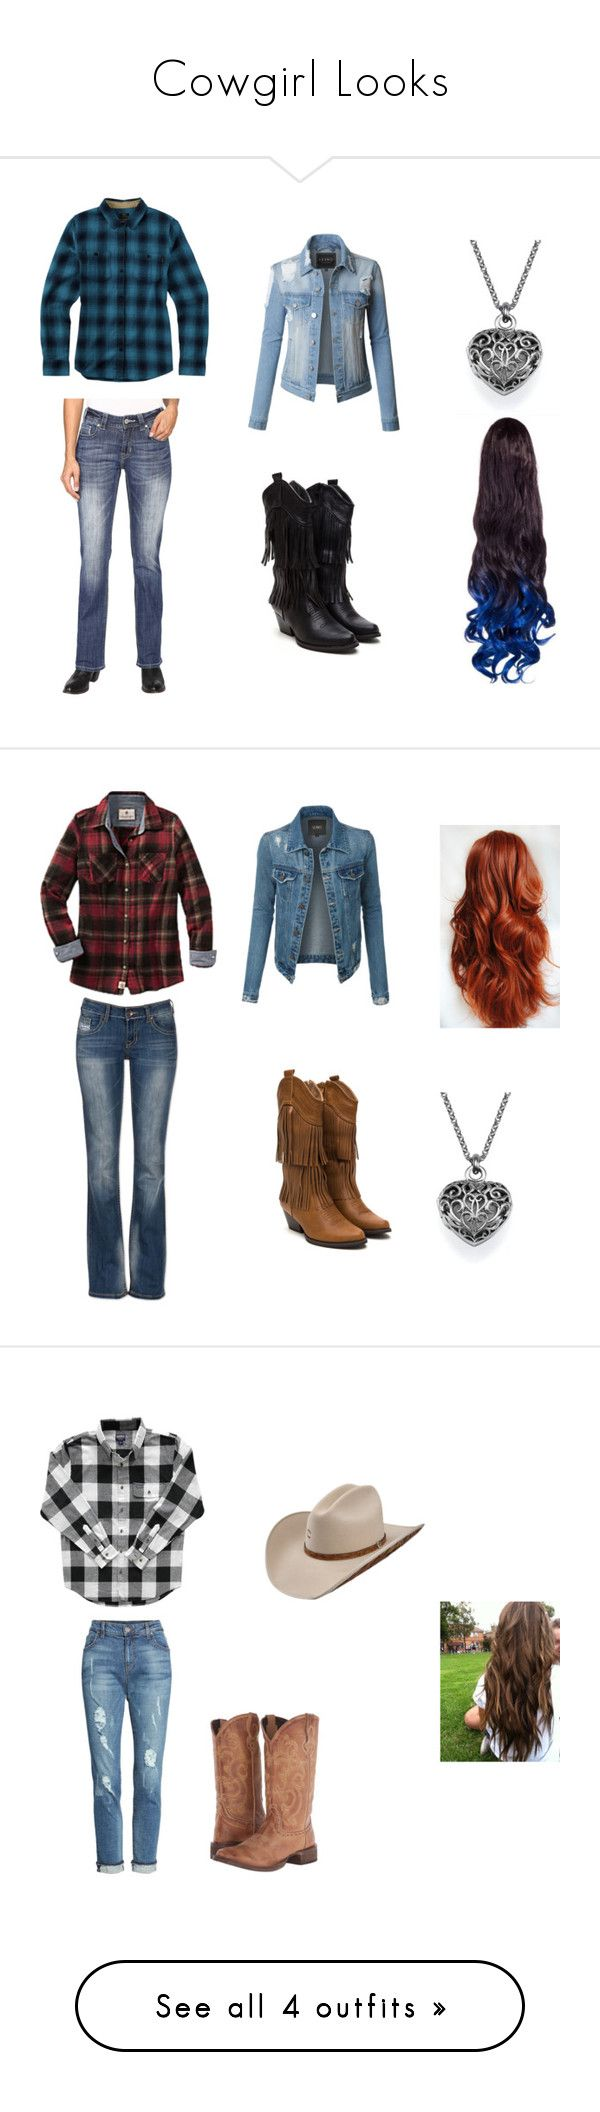 """Cowgirl Looks"" by shadowwolf16 on Polyvore featuring Rock & Roll Cowgirl, LE3NO, Burton, Ultimate, KUT from the Kloth, Roper, prAna, Lands' End, Corral and River Island"